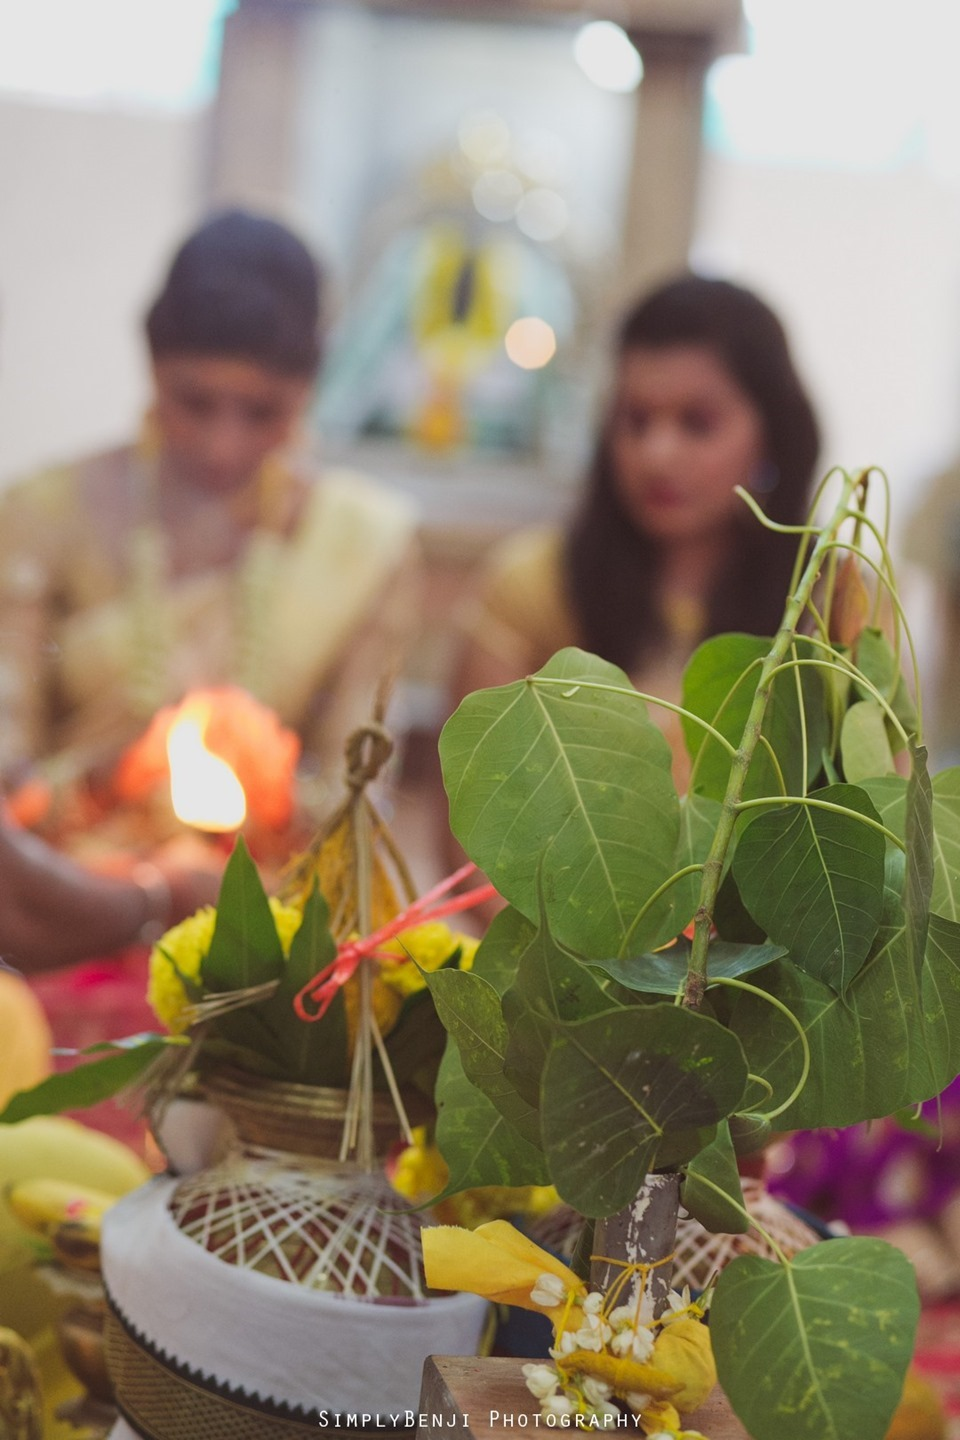 Tamil Wedding at Sri Anantha Vel Murugan Alayam Temple and Reception at Petaling Jaya Crystal Crown Hotel_KL Photographer_0060